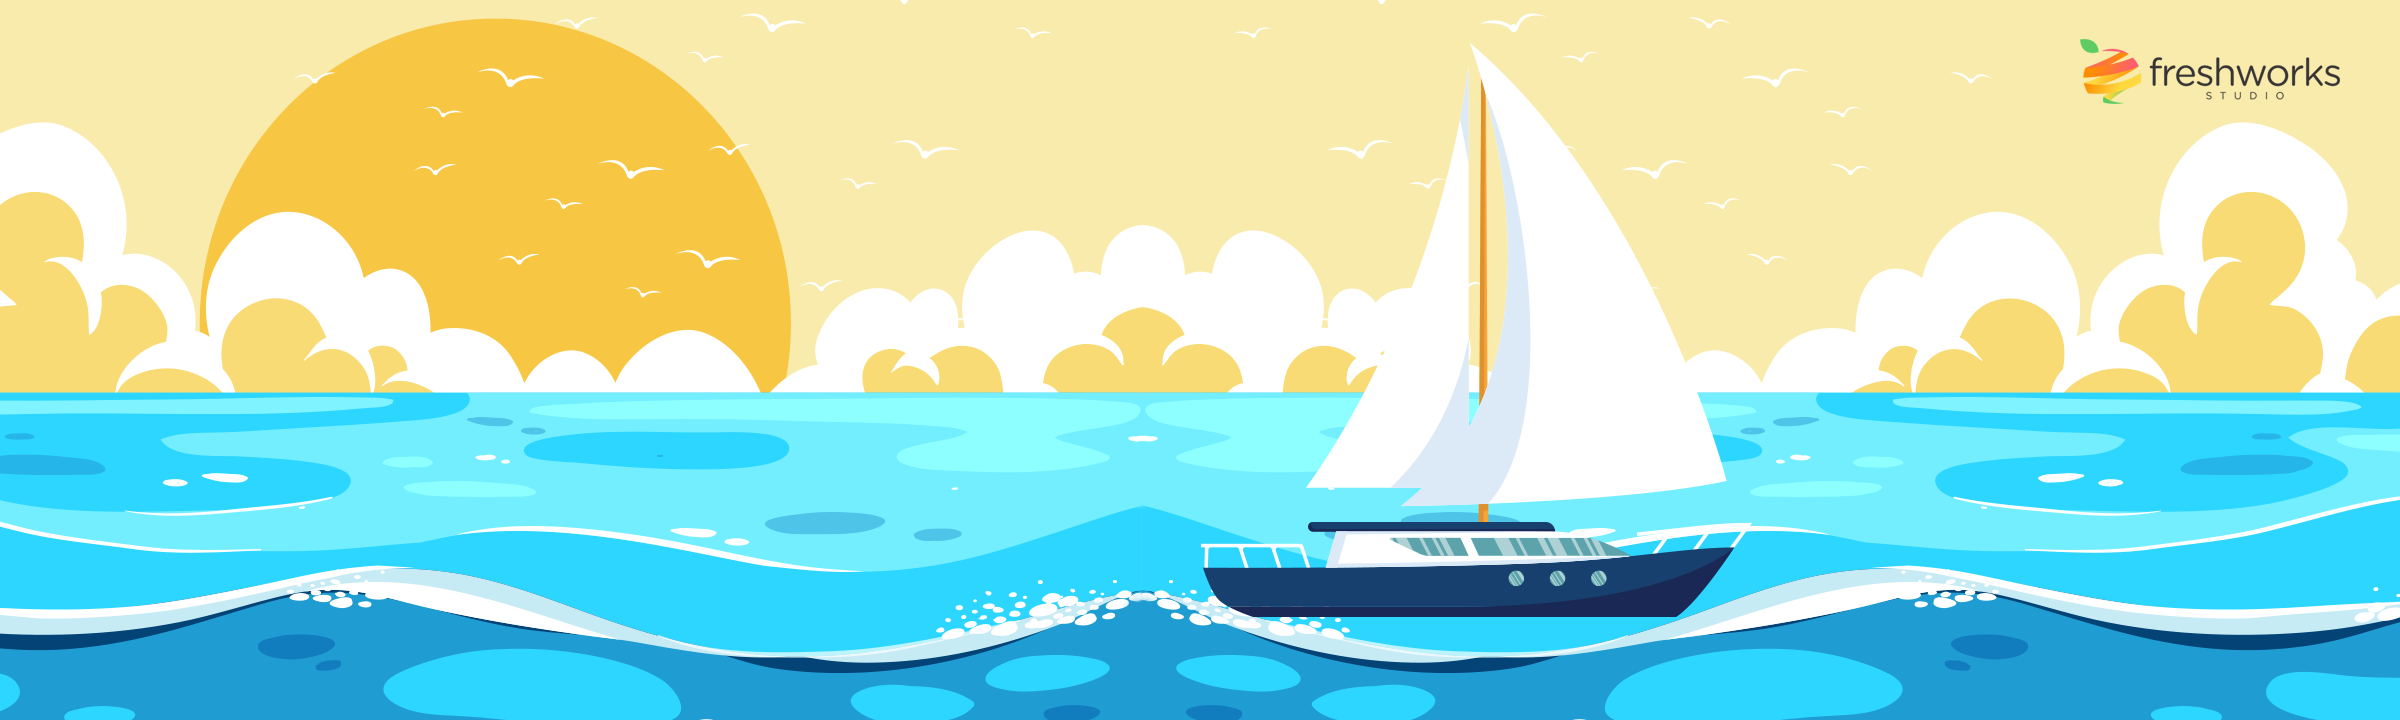 Sailing_Plan_Technical_Article_2400x720.png